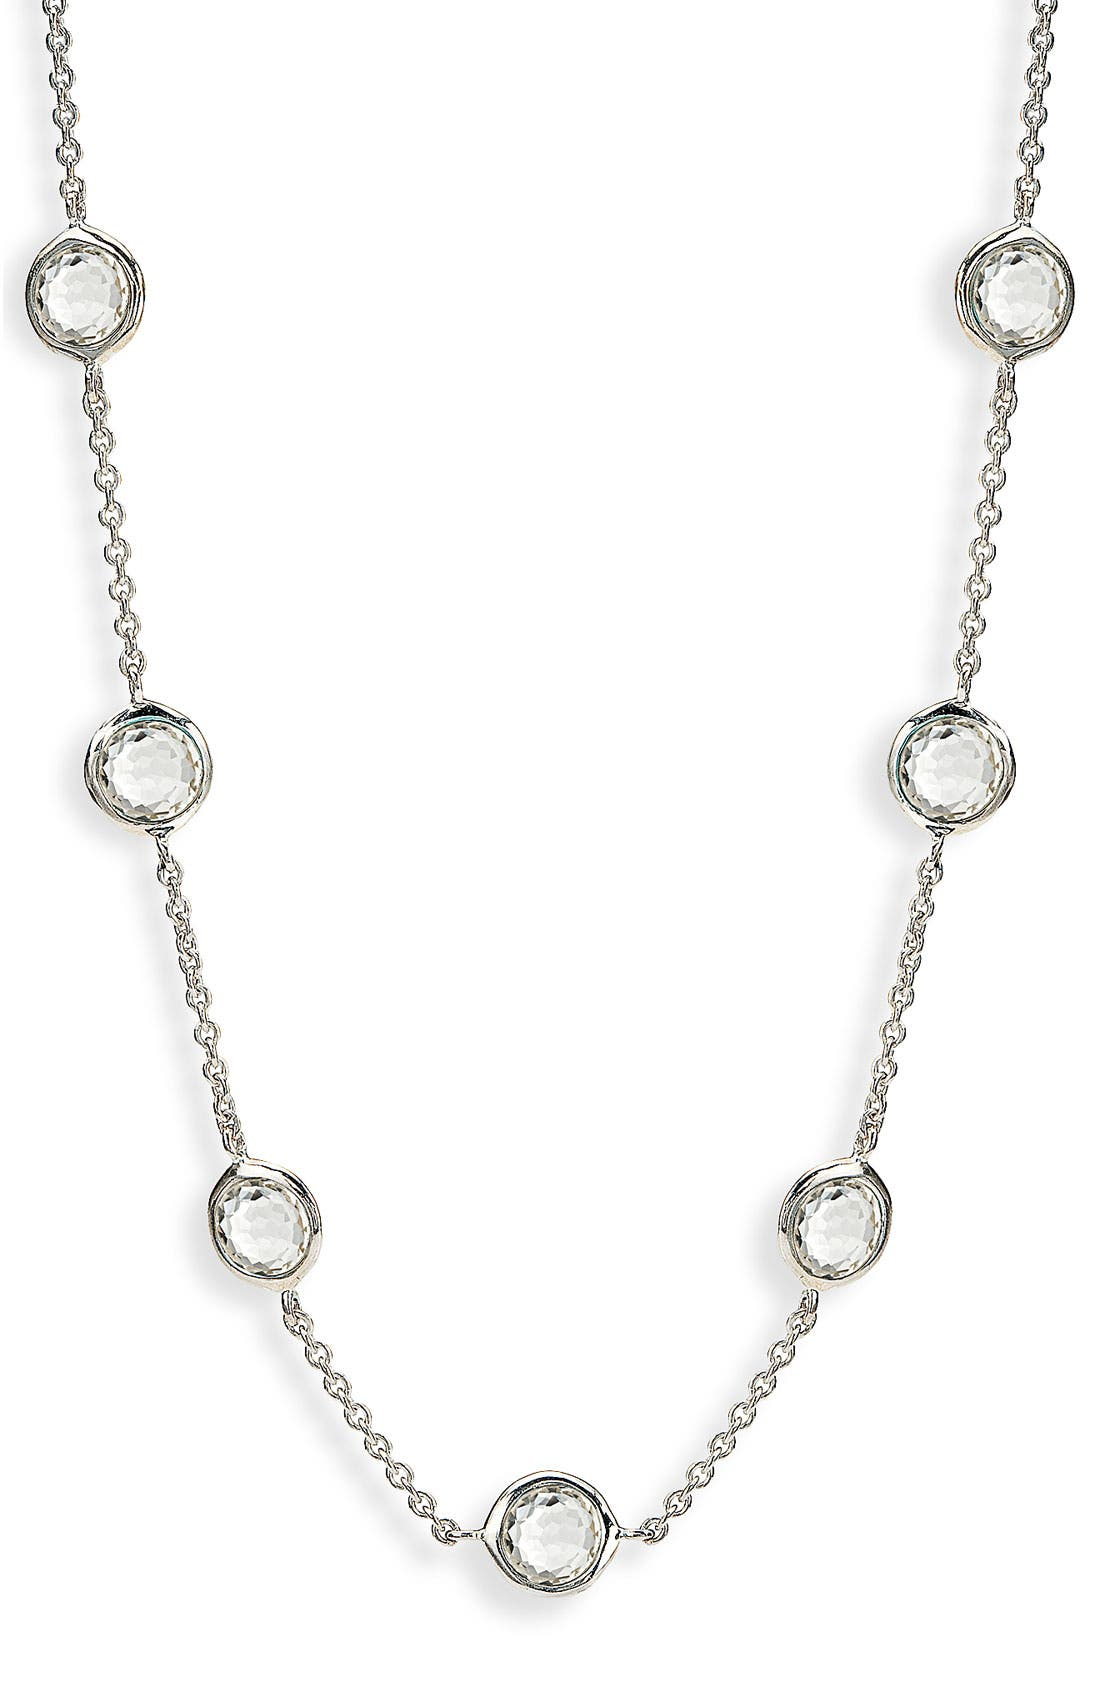 Main Image - Ippolita 'Rock Candy' 7-Station Lollipop Necklace